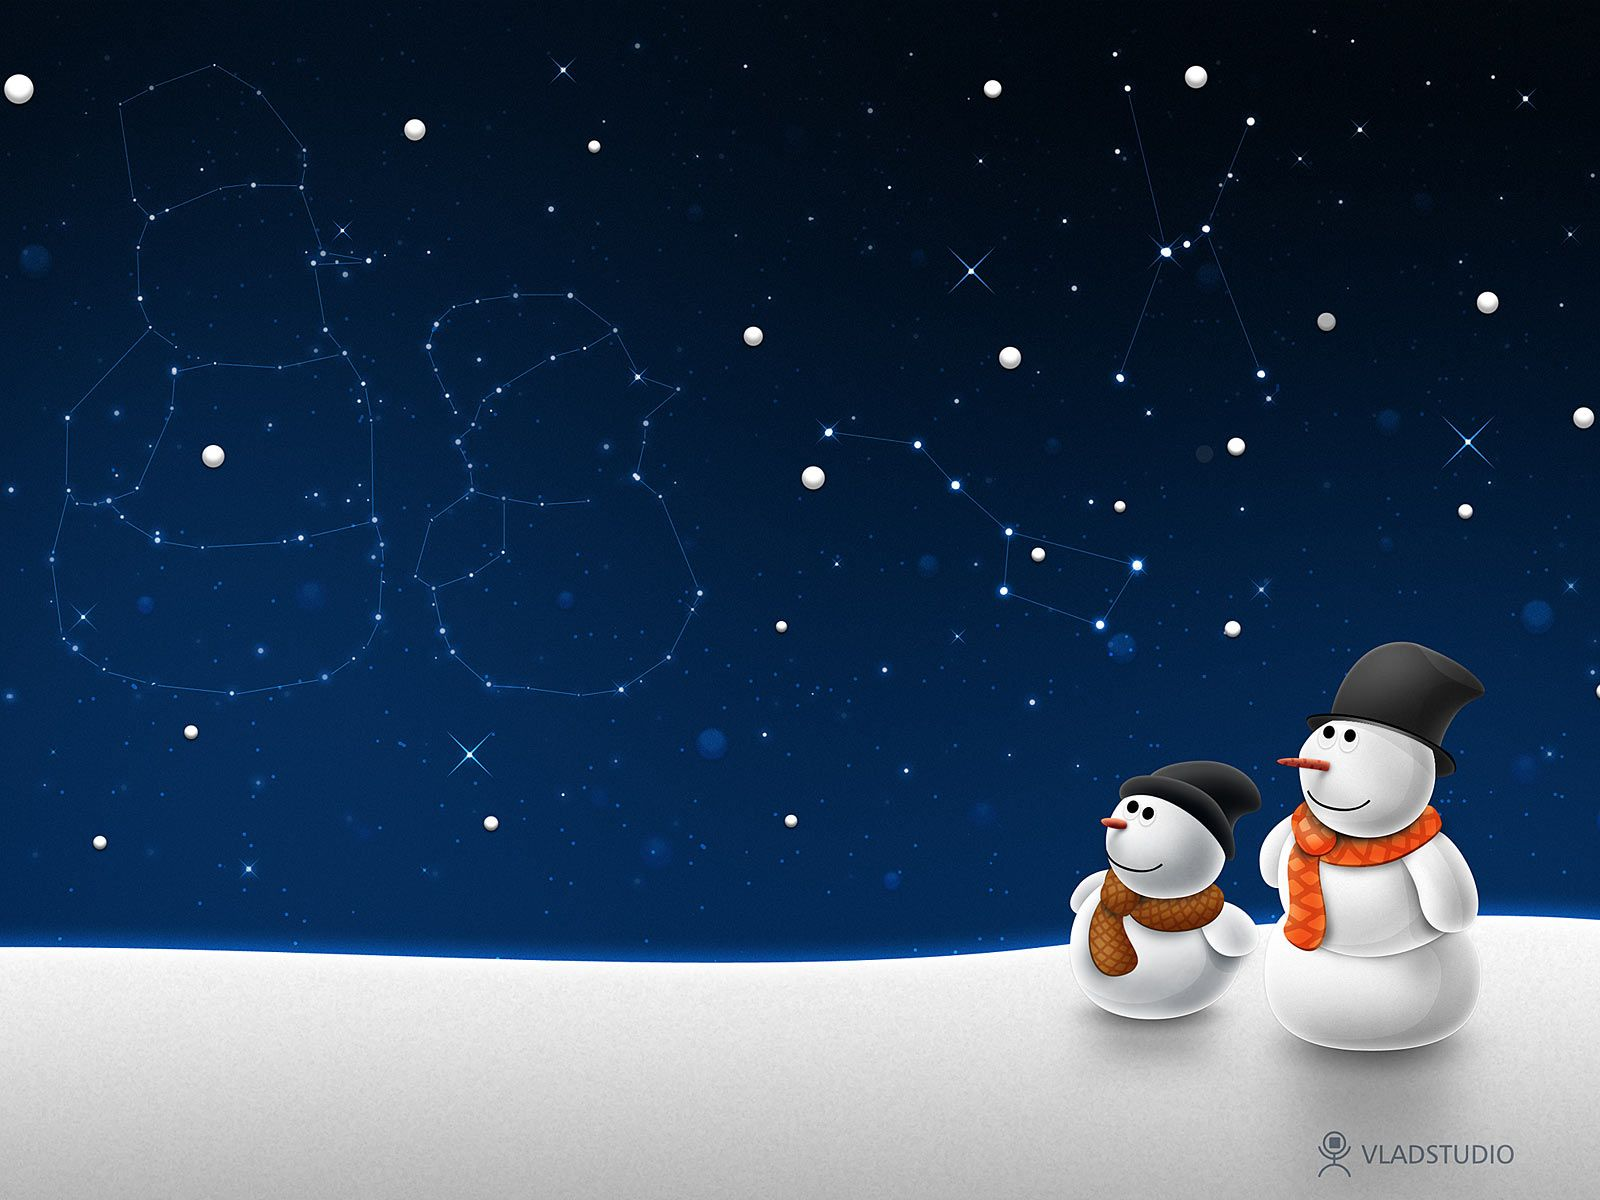 happy 1st day of winter yesterday click on over to our website to a· snowman wallpaperchristmas desktop